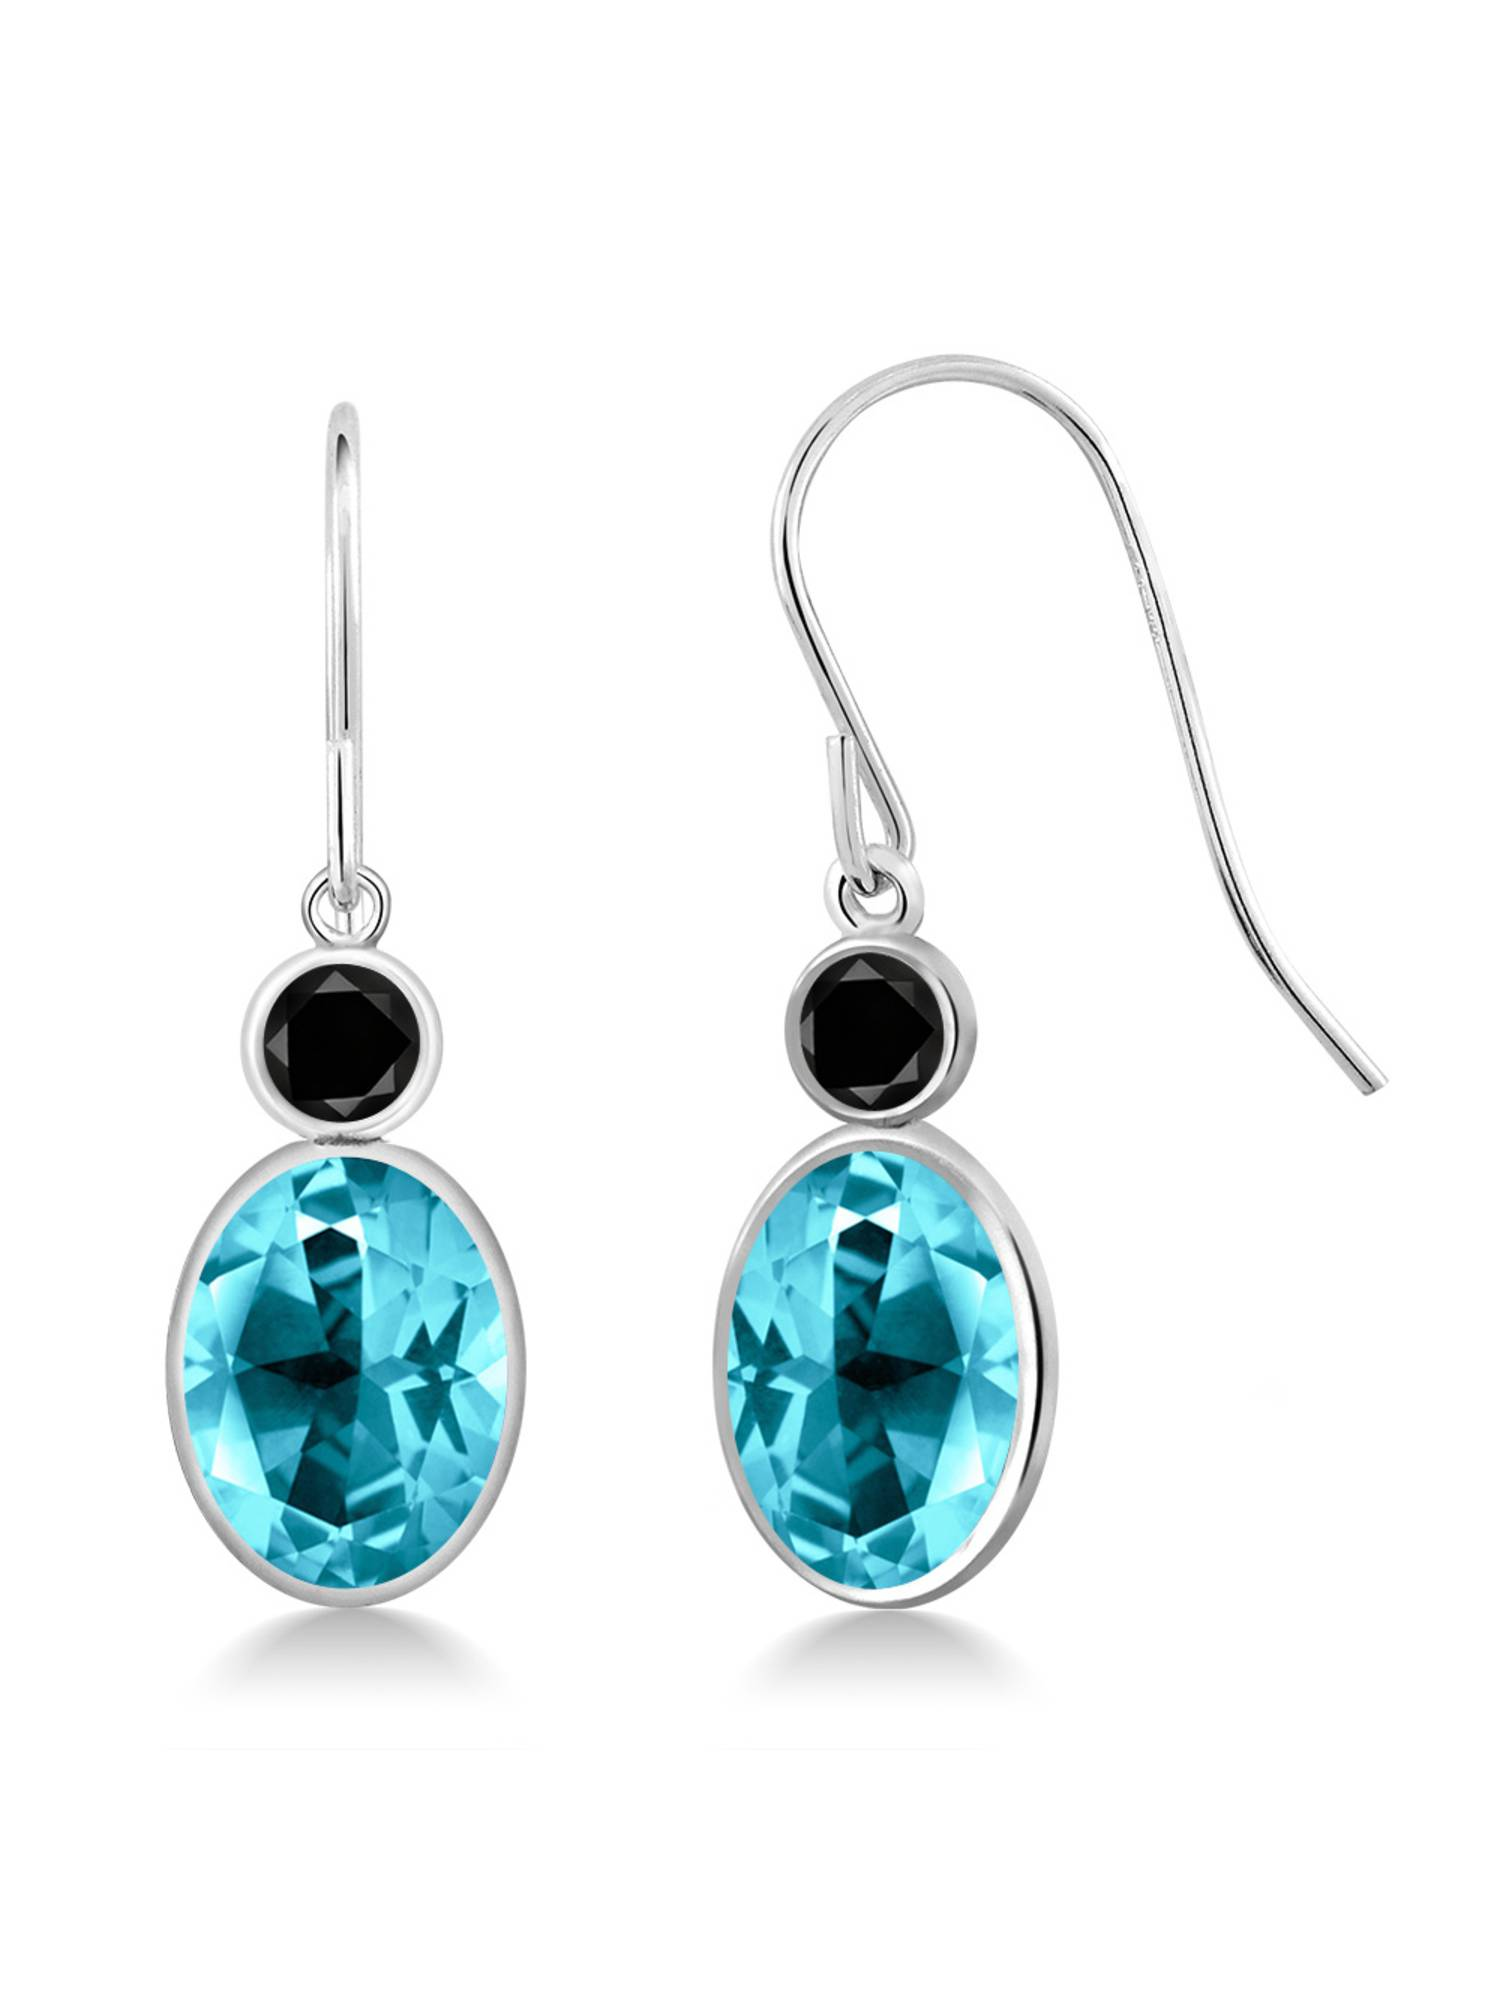 14K White Gold Diamond Earrings Set with Oval Paraiba Topaz from Swarovski by